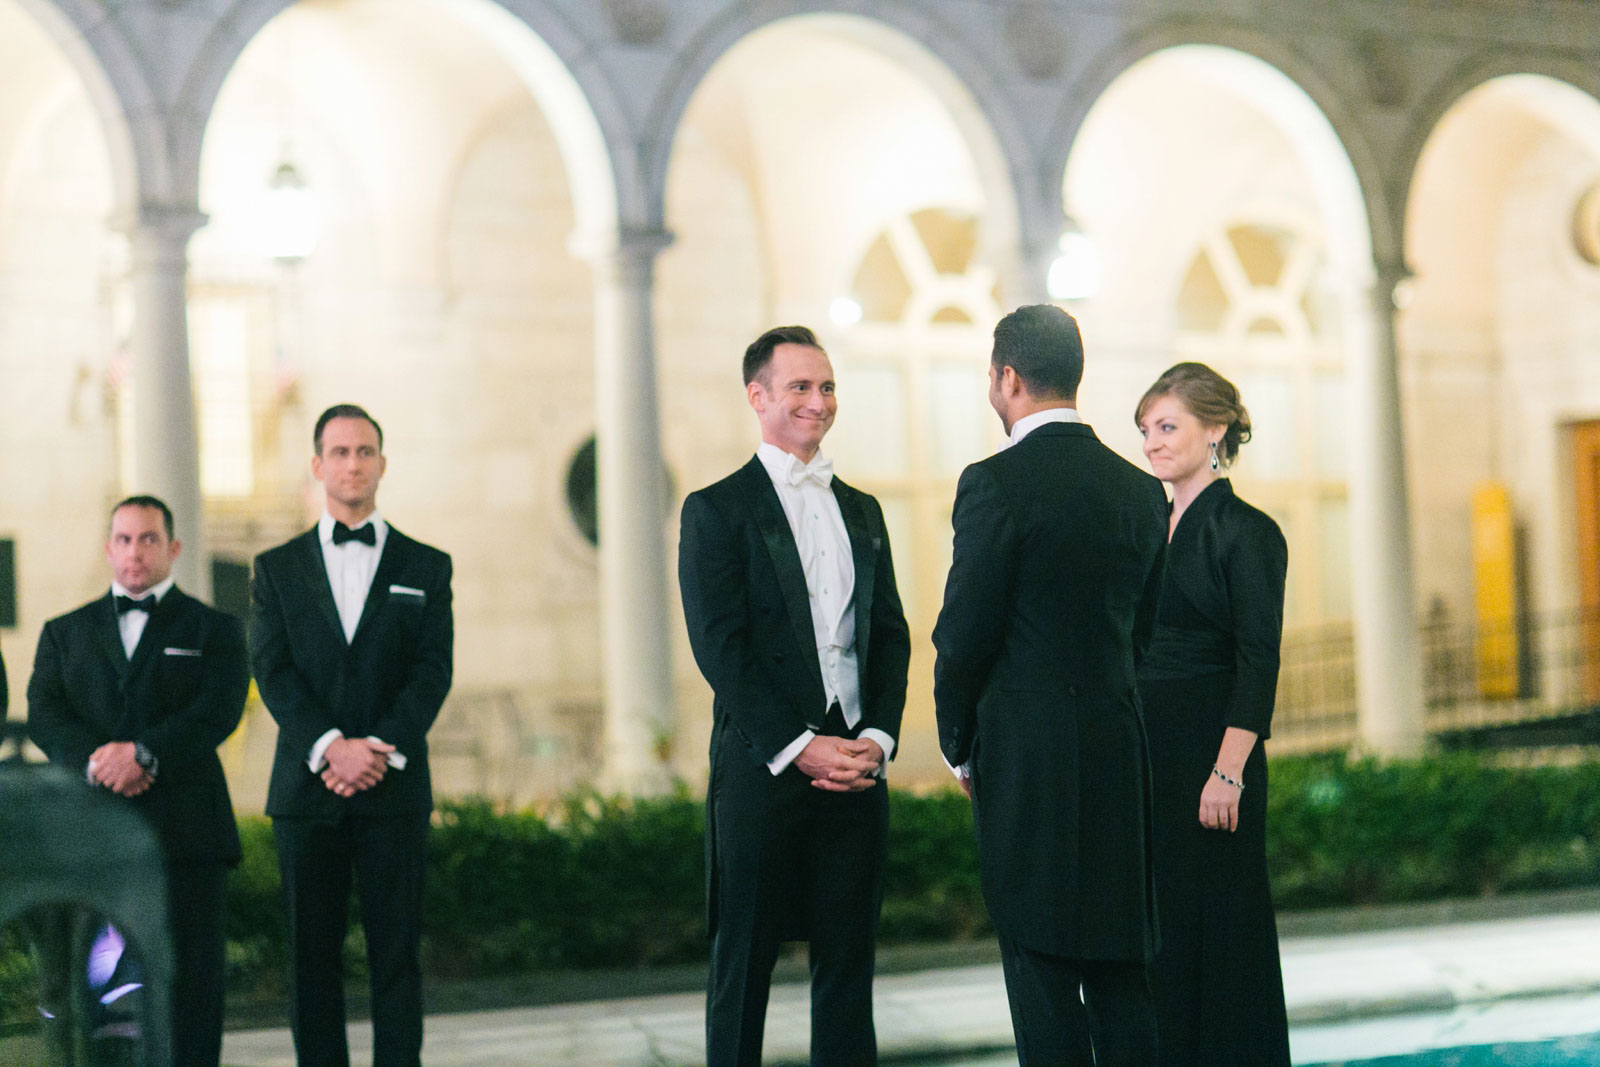 Couple smiles at each other during nighttime outdoor wedding ceremony at Boston public library